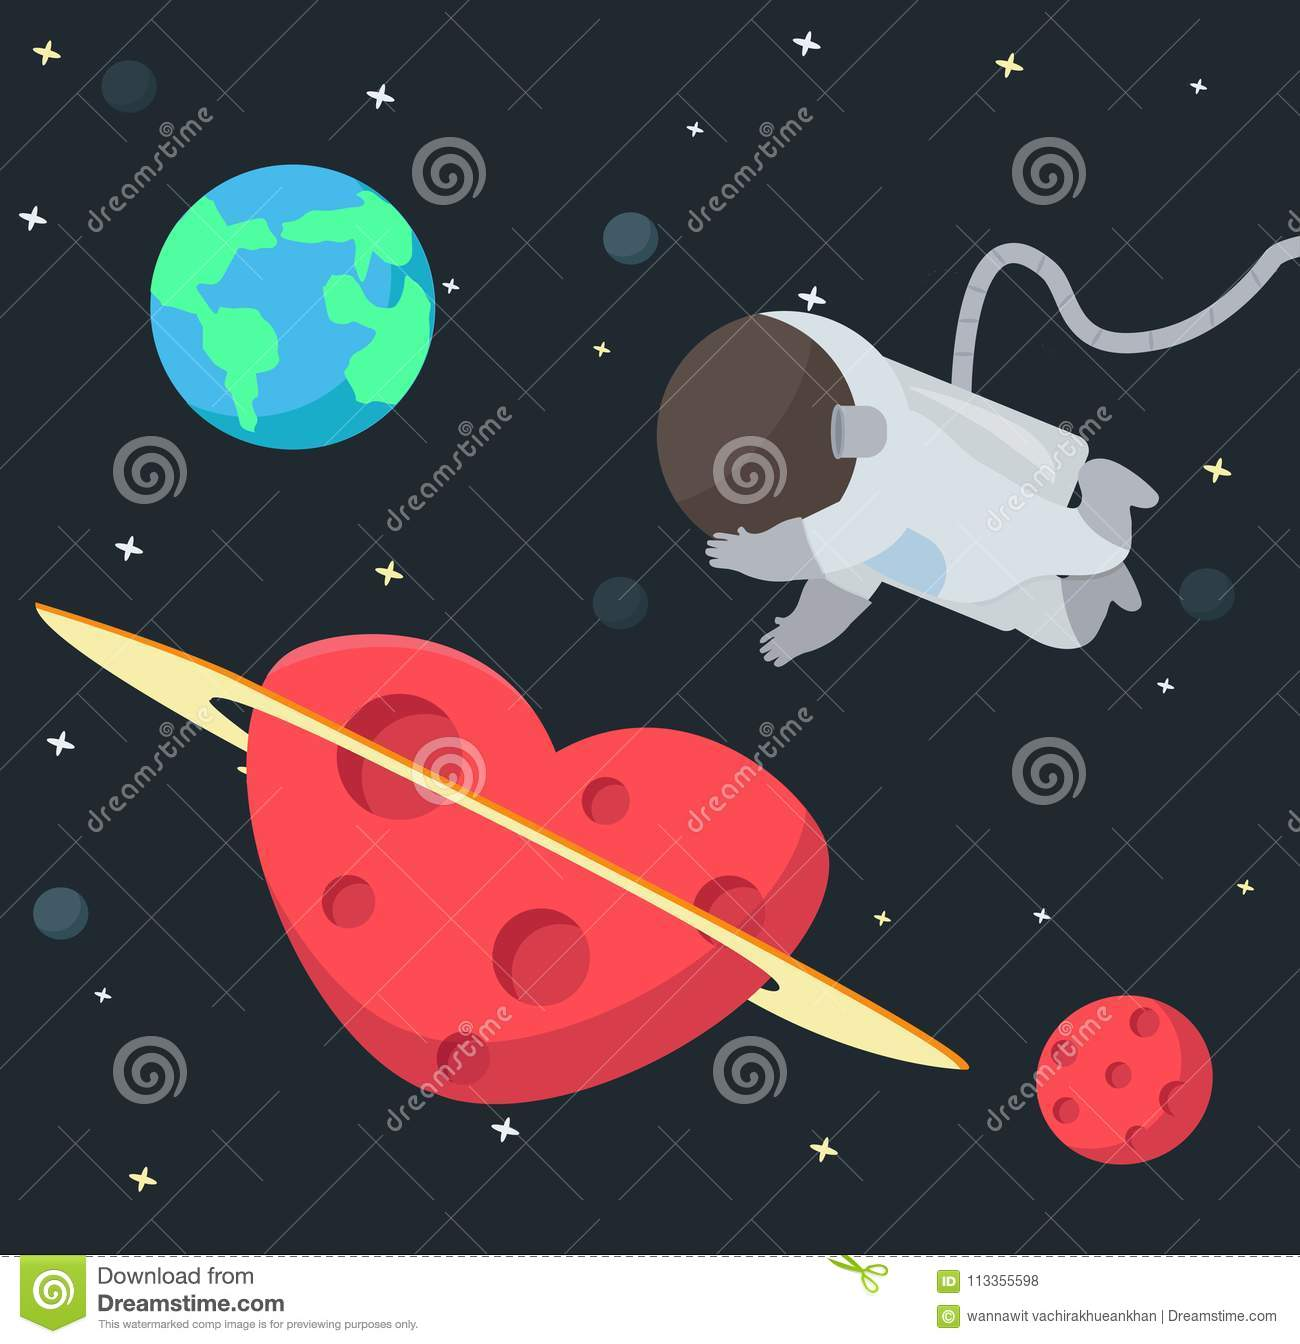 astronaut floating in space background stock vector - illustration